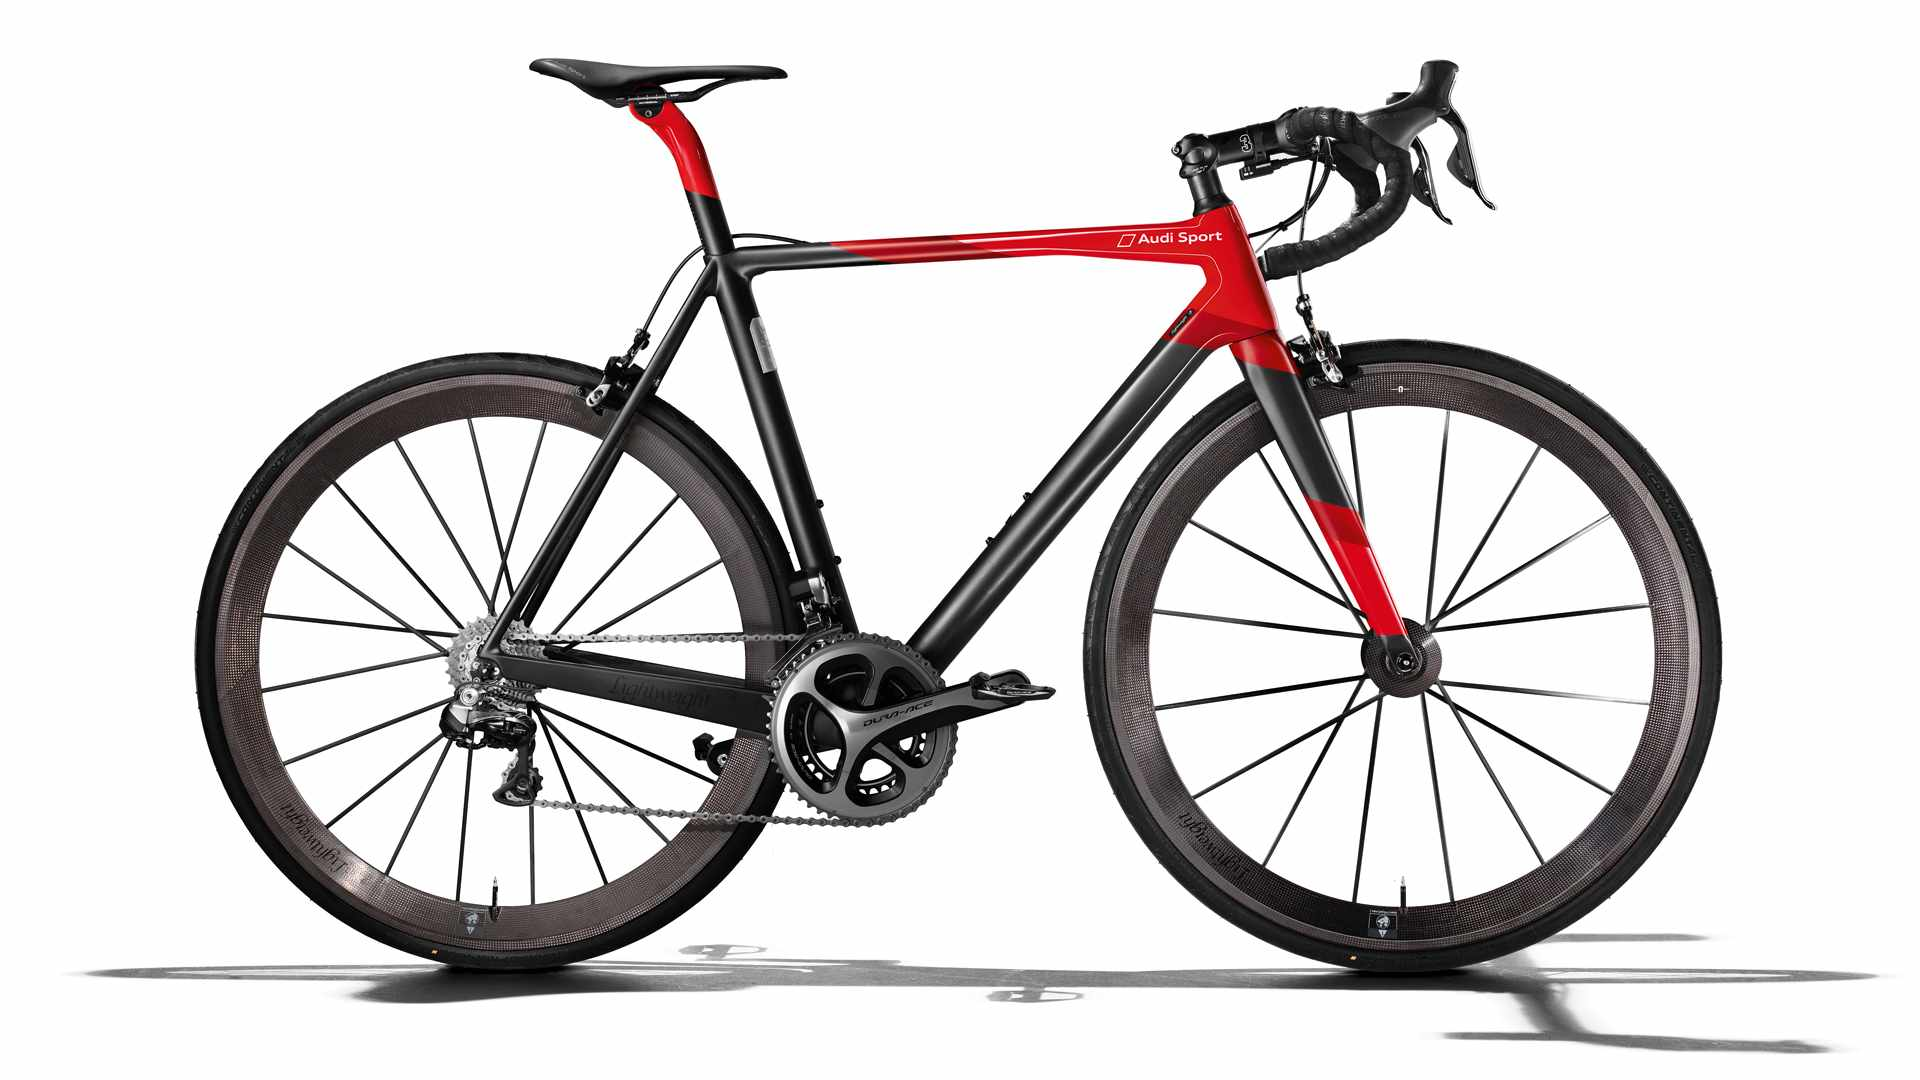 The new Audi Sport Racing Bike could be yours for just €17,500